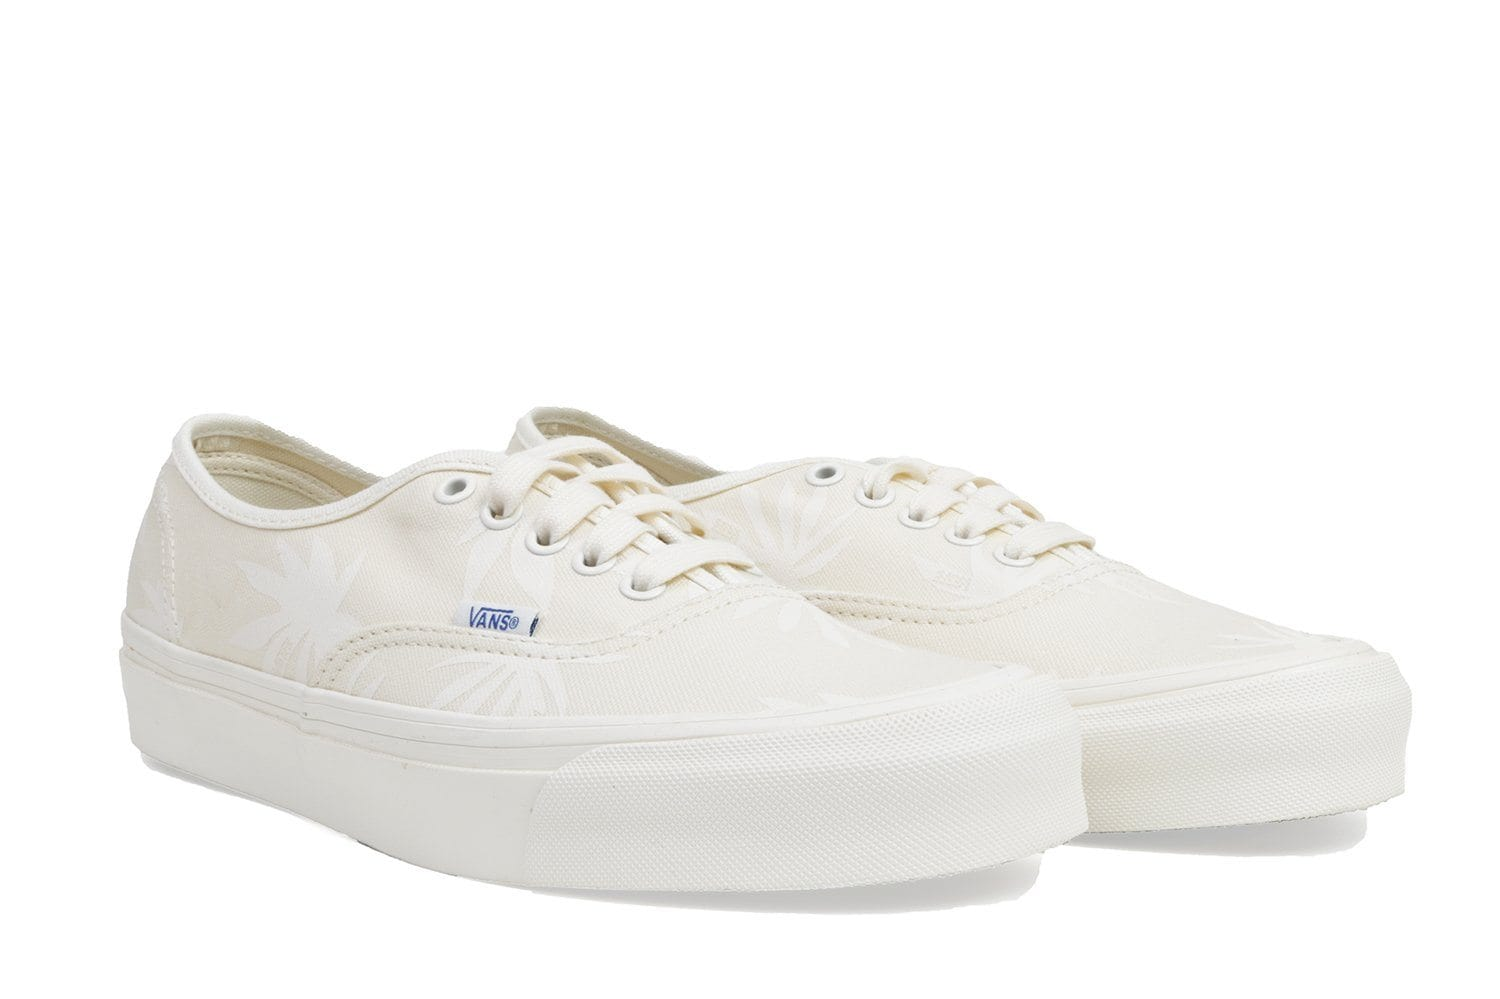 OG AUTHENTIC LX - VN0A4BV9VYR MENS FOOTWEAR VANS